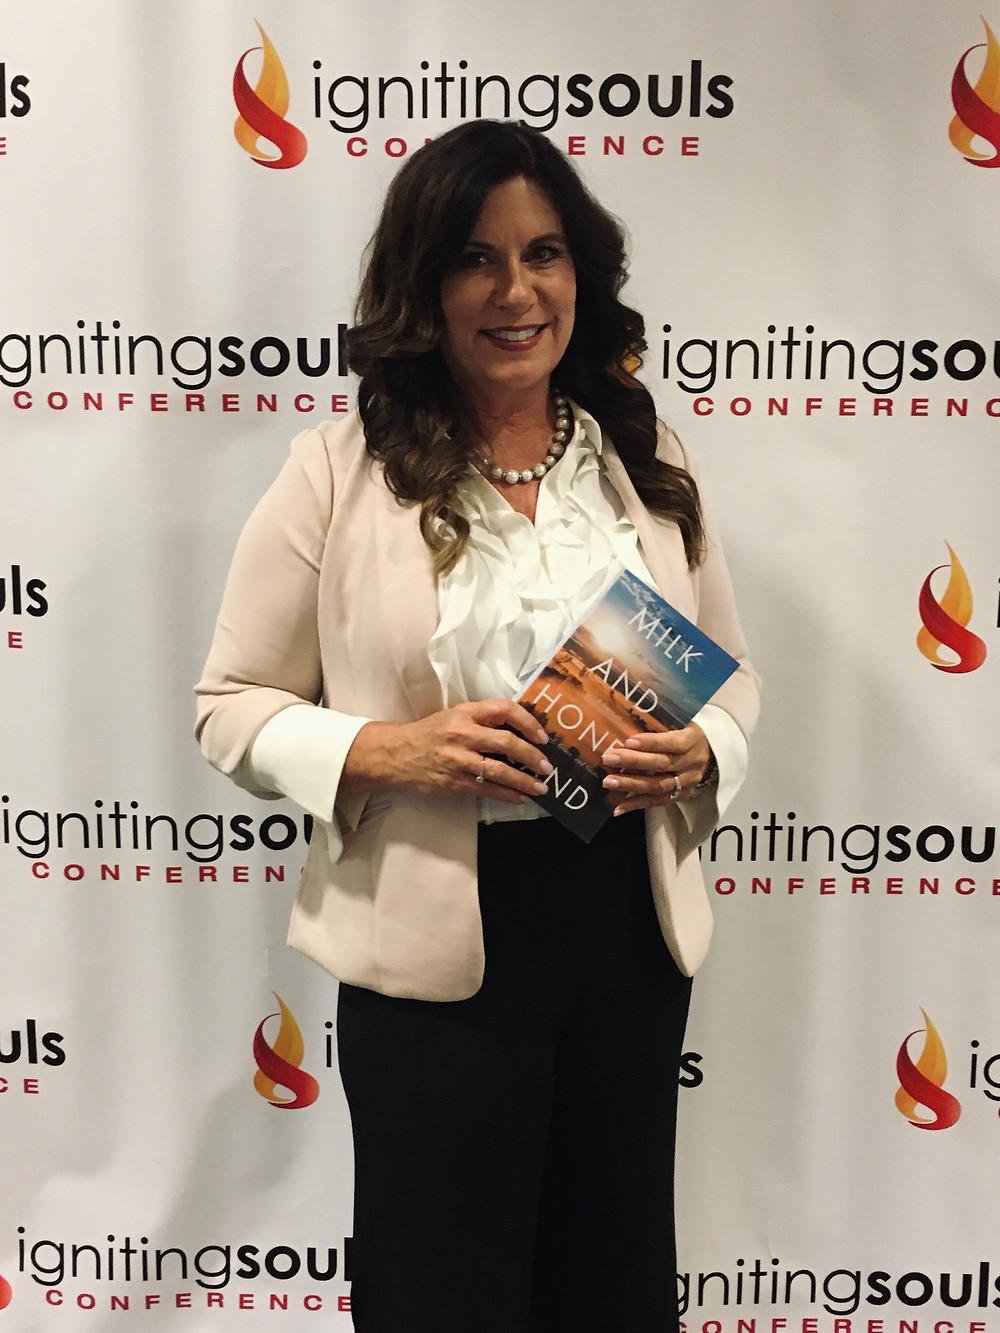 J. M. Huxley at The Igniting Souls Conference, October 2019